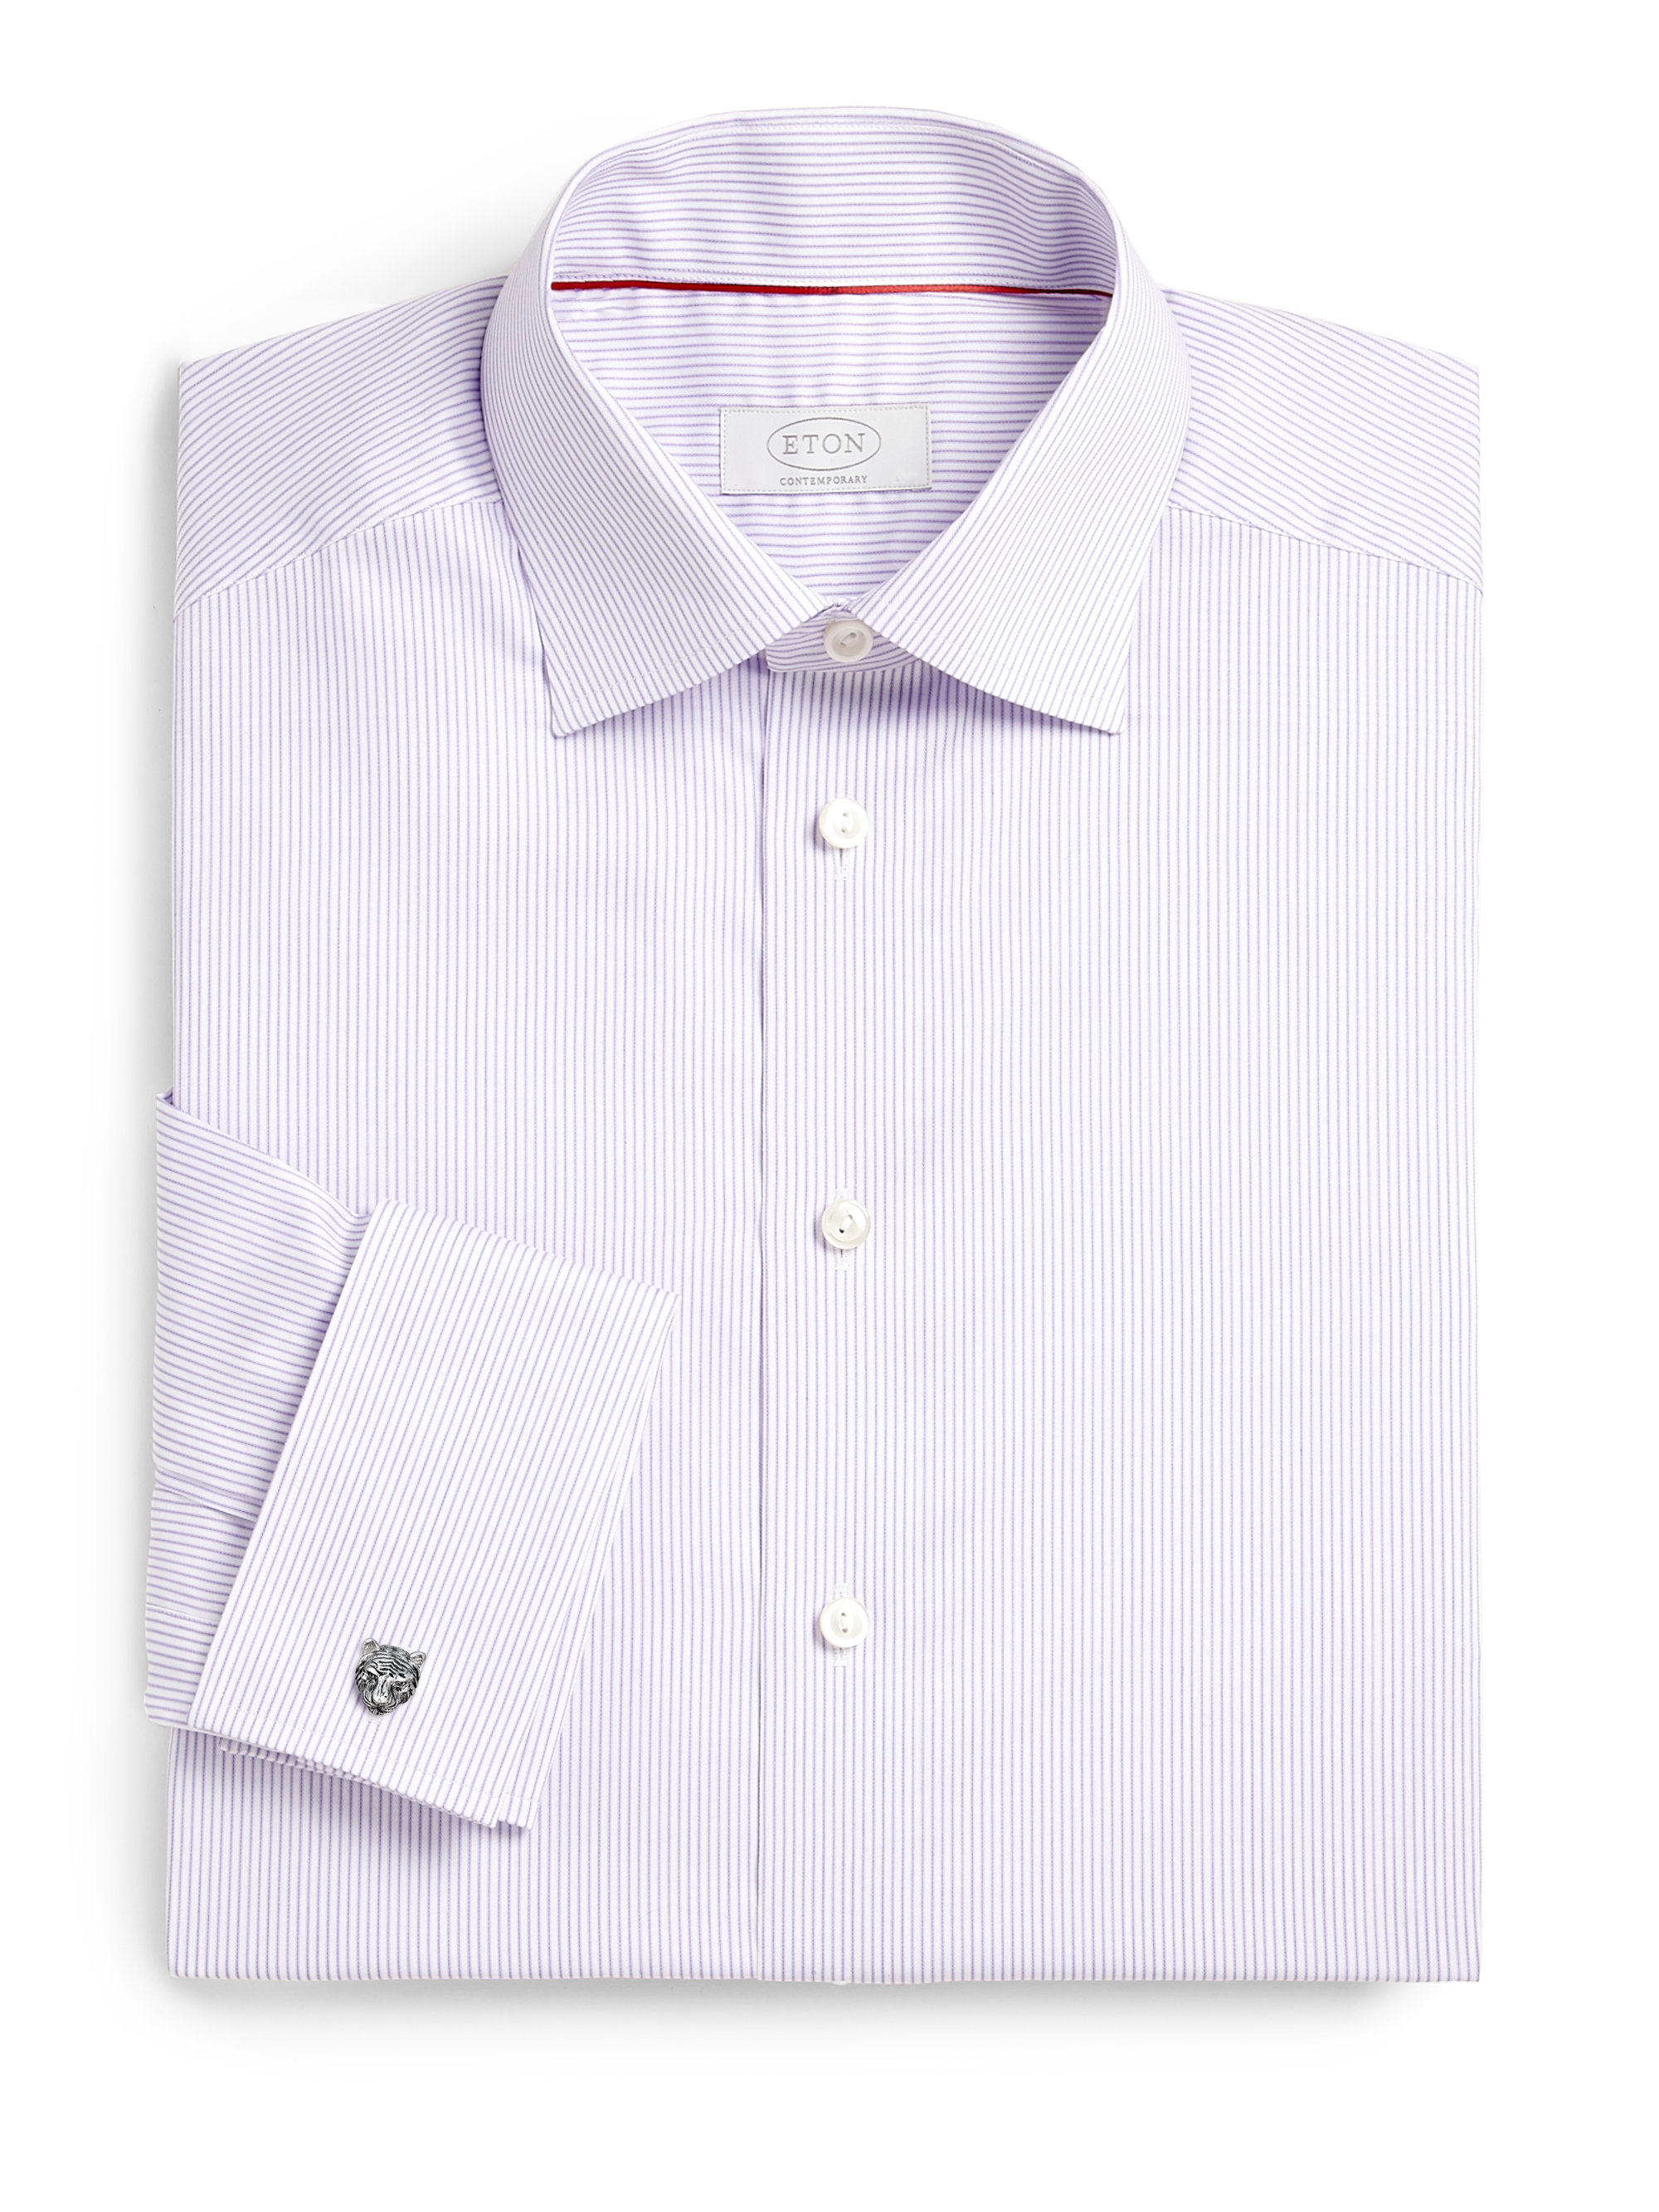 Eton of sweden contemporaryfit fine striped dress shirt in for Purple striped dress shirt